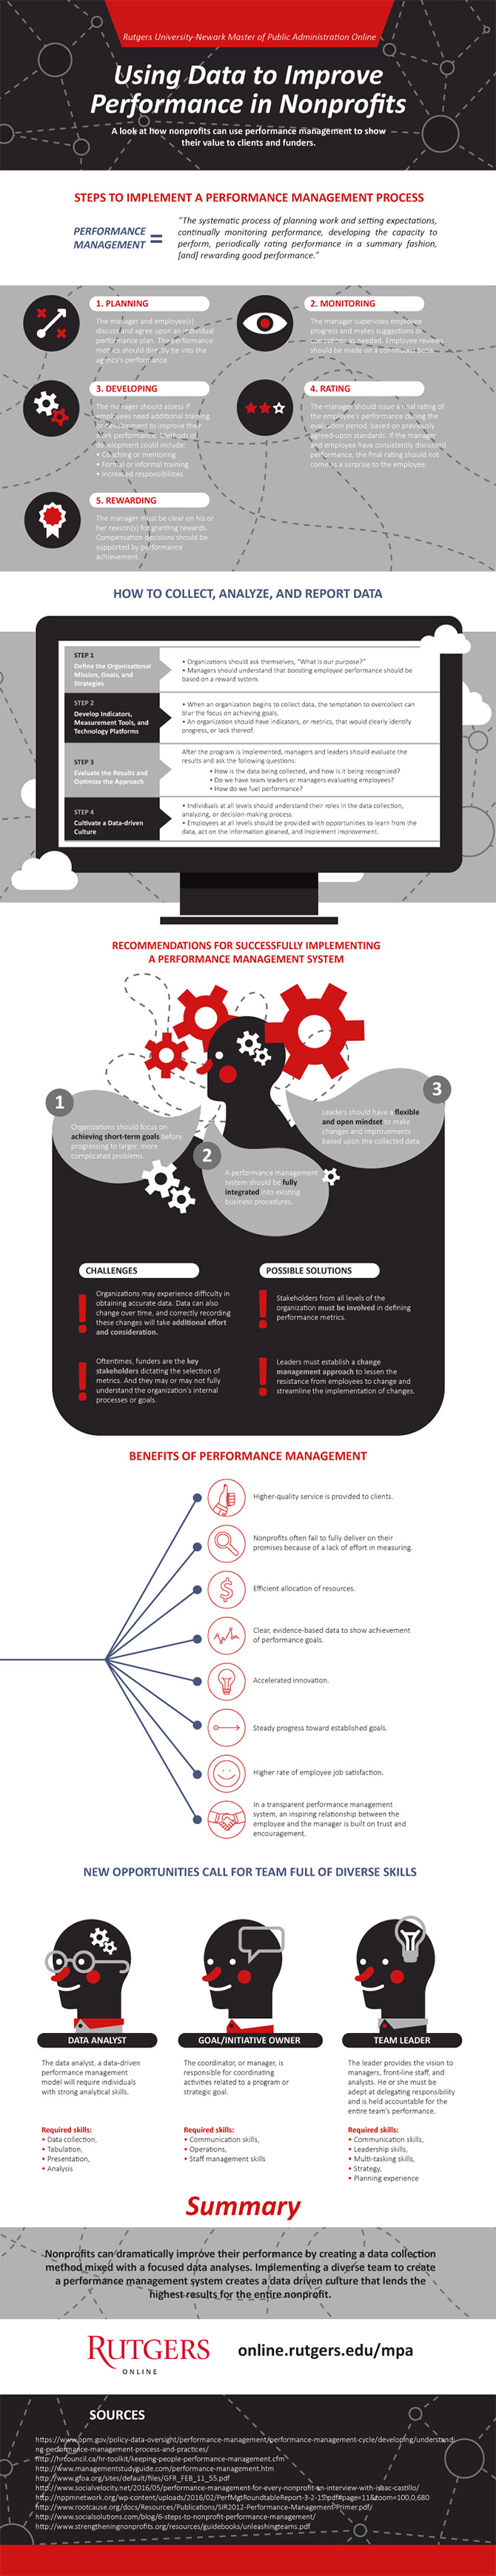 Using Data To Improve Performance In Nonprofits [Infographic]